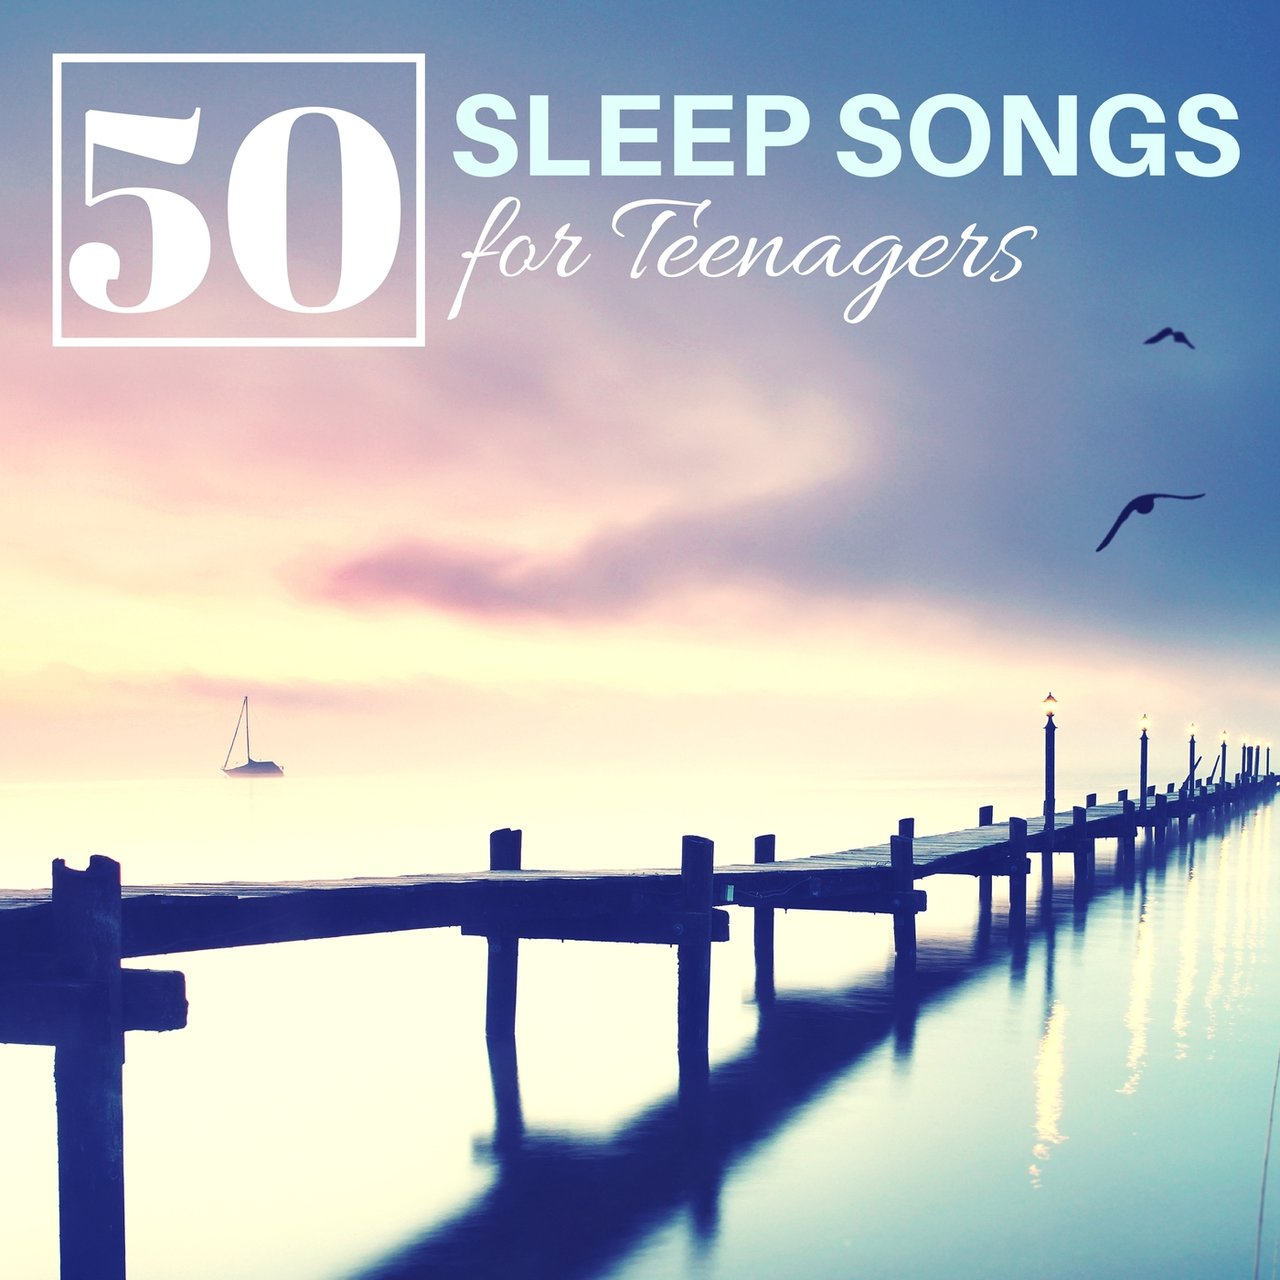 50 Sleep Songs for Teenagers - Isochronic Tones & New Age Soundscapes